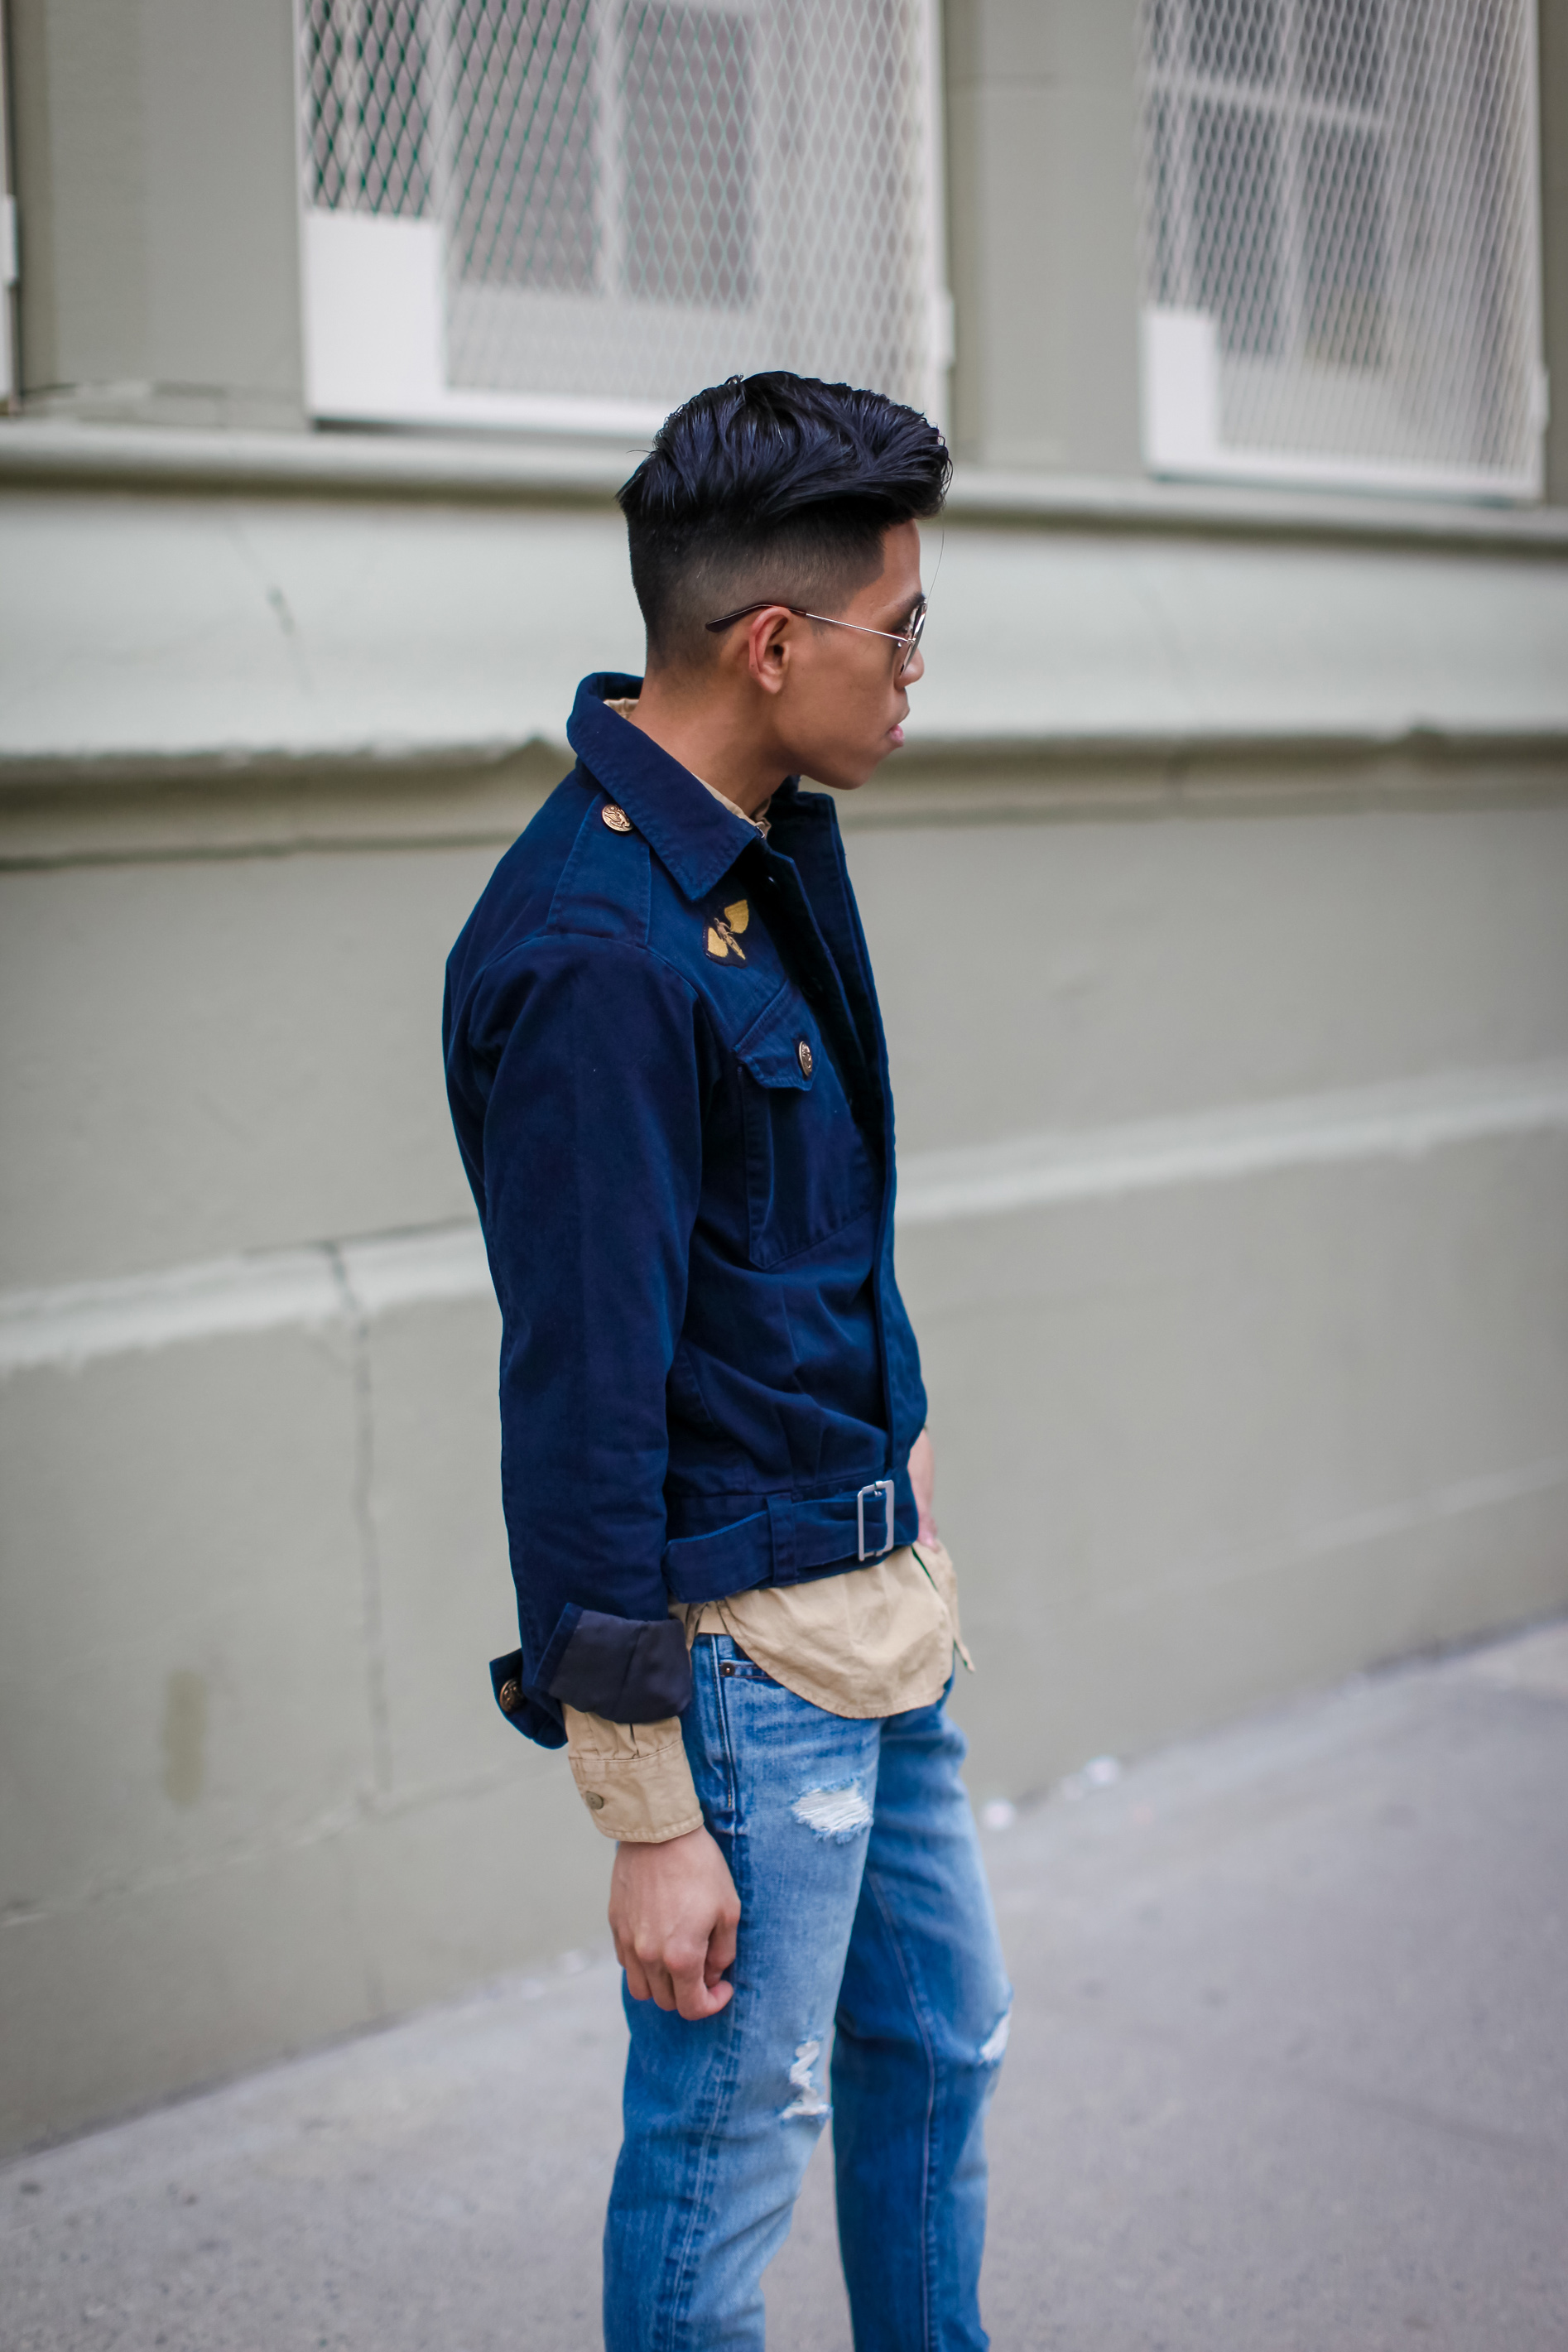 oh anthonio - Anthony Urbano - men's aviator pilot inspired outfit